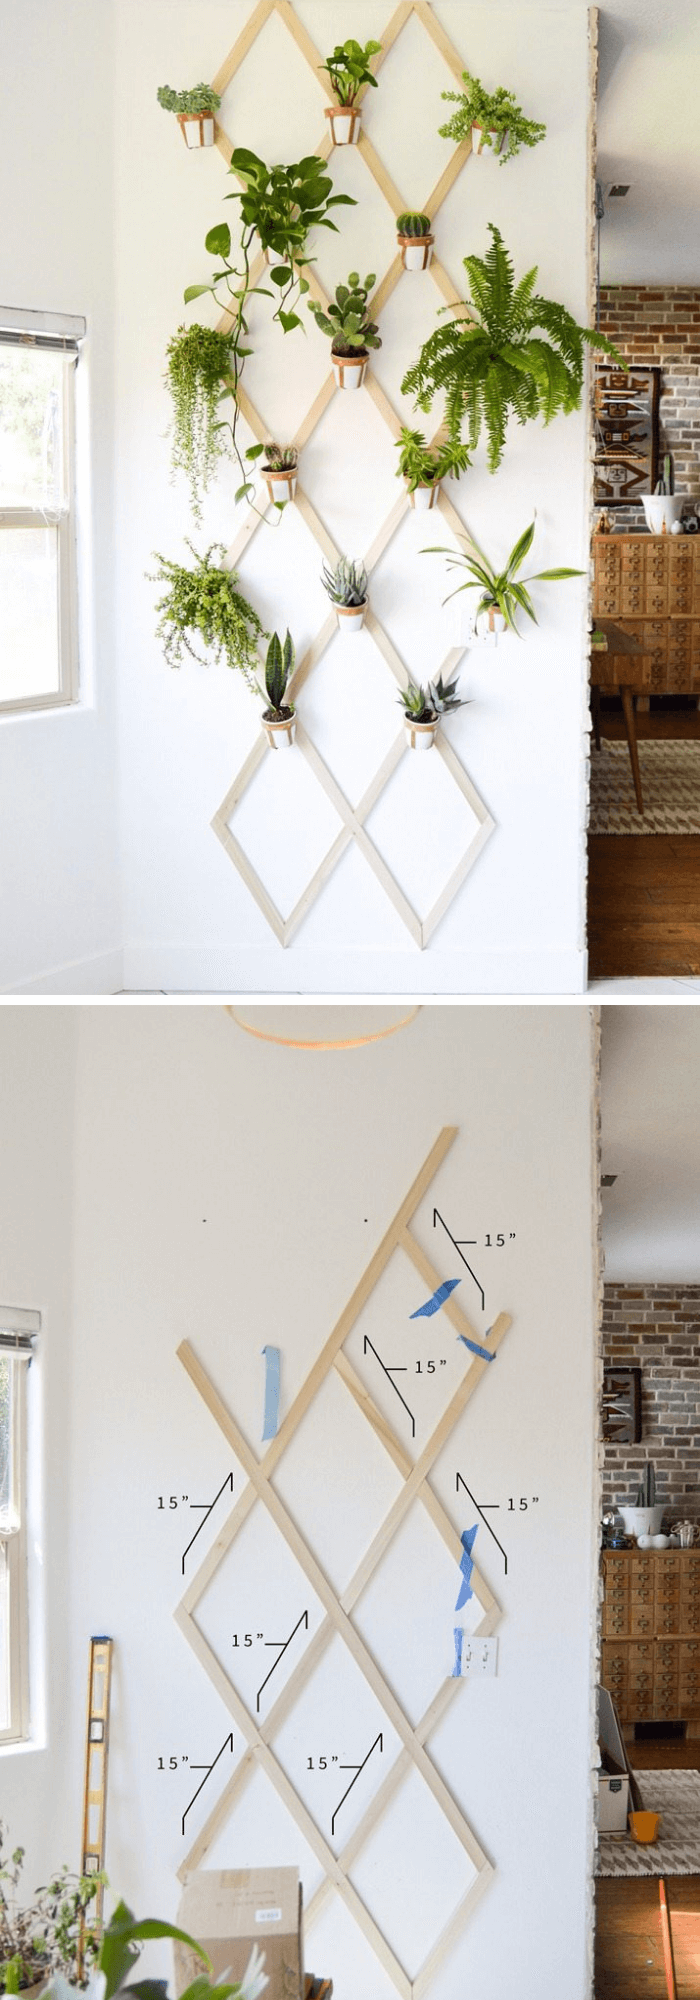 DIY Wood and Leather Trellis Plant Wall